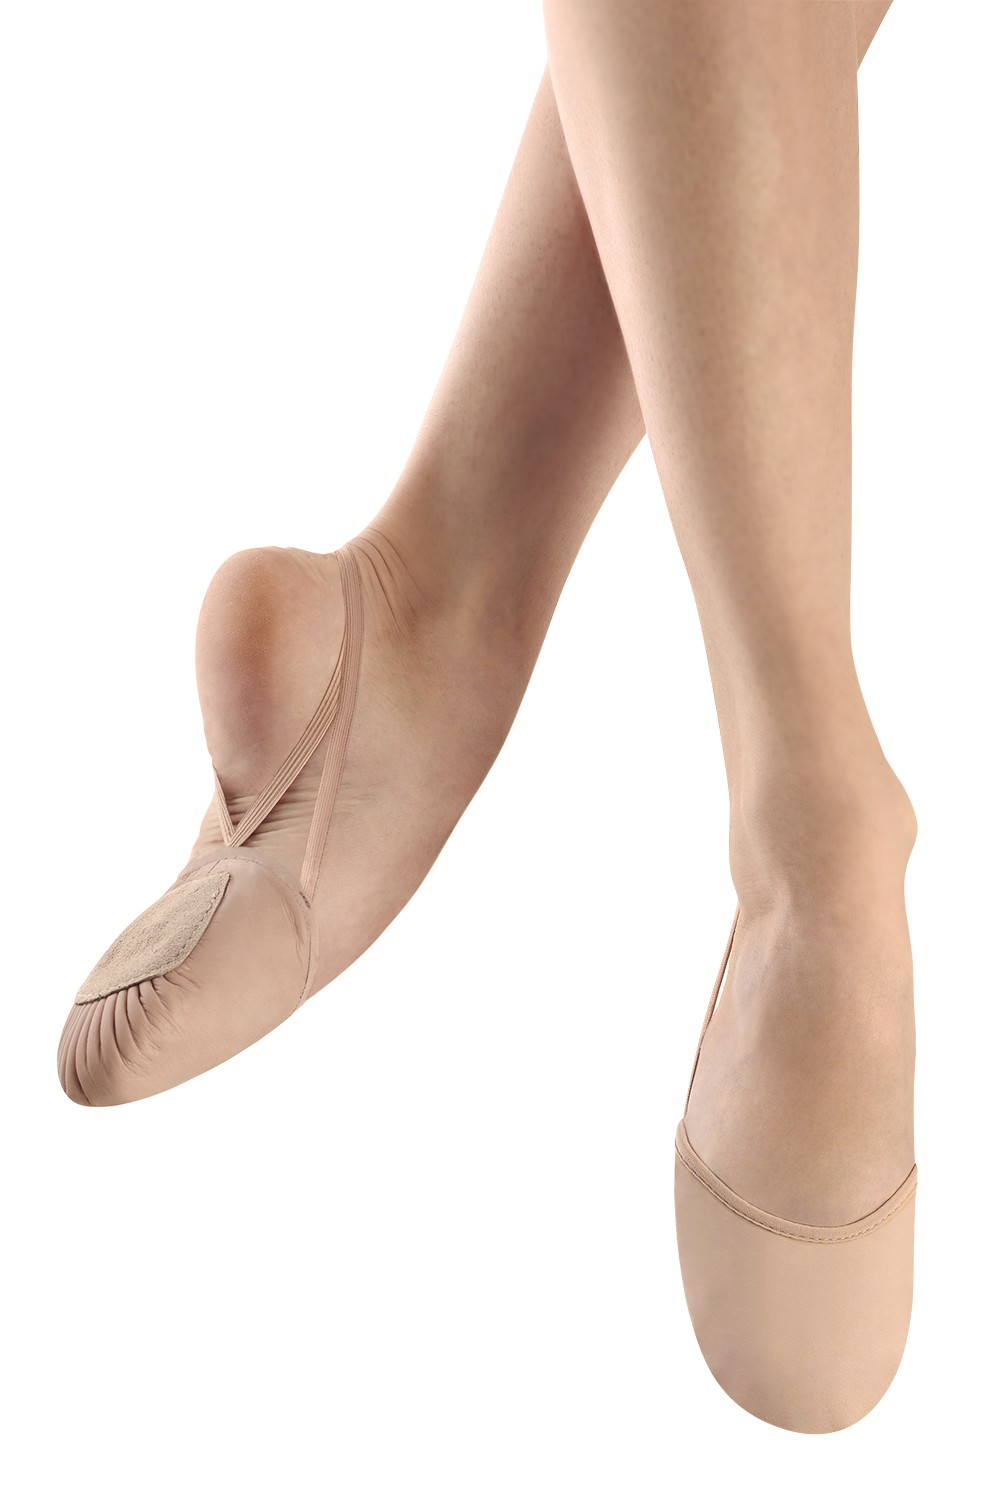 Eclipse Leather Women's Contemporary Dance Shoes